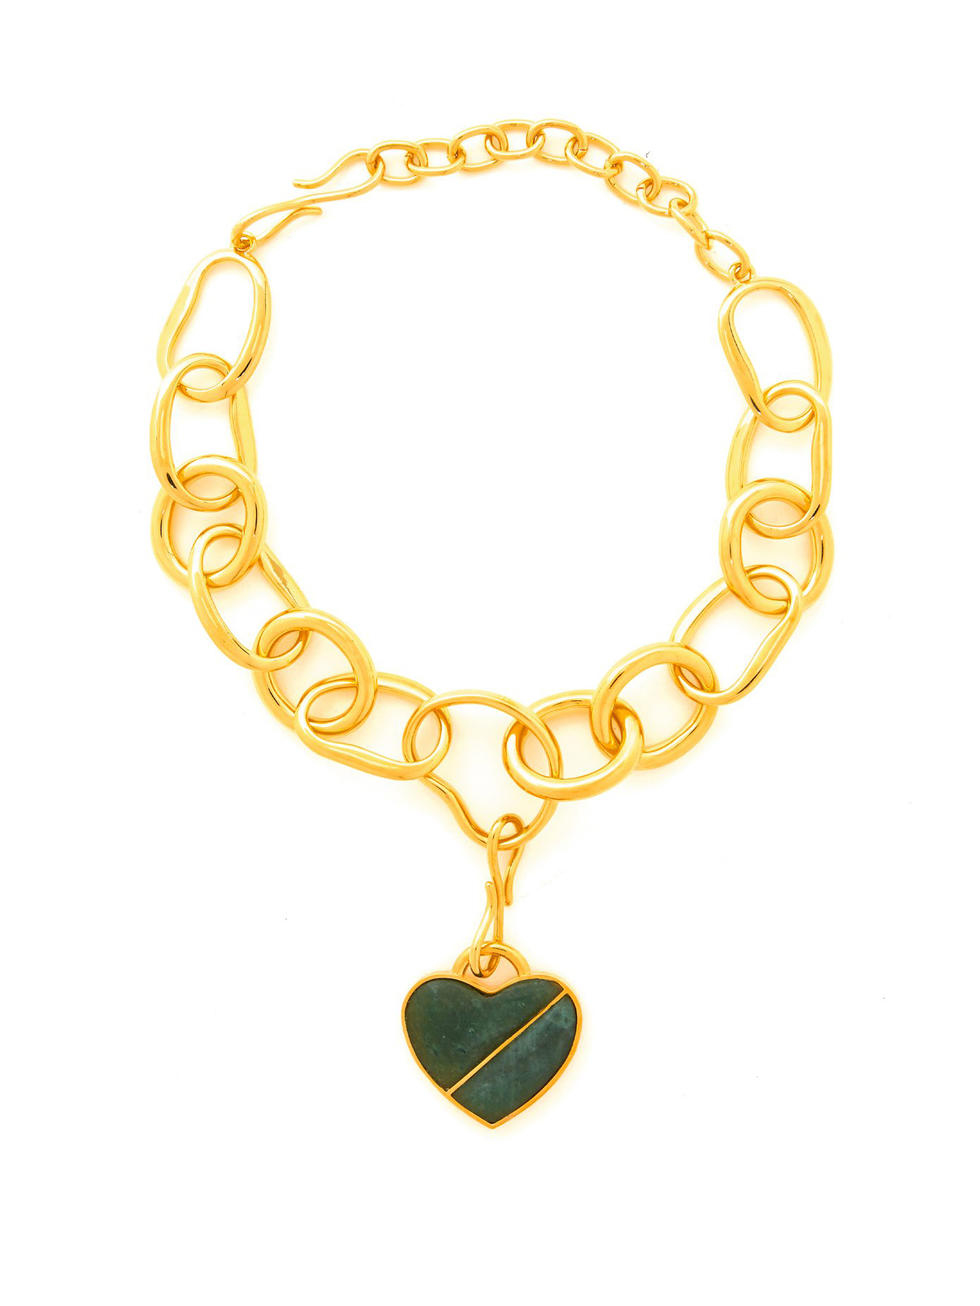 Necklace, Dhs1,840, Lizzie Fortunato at Matchesfashion.com